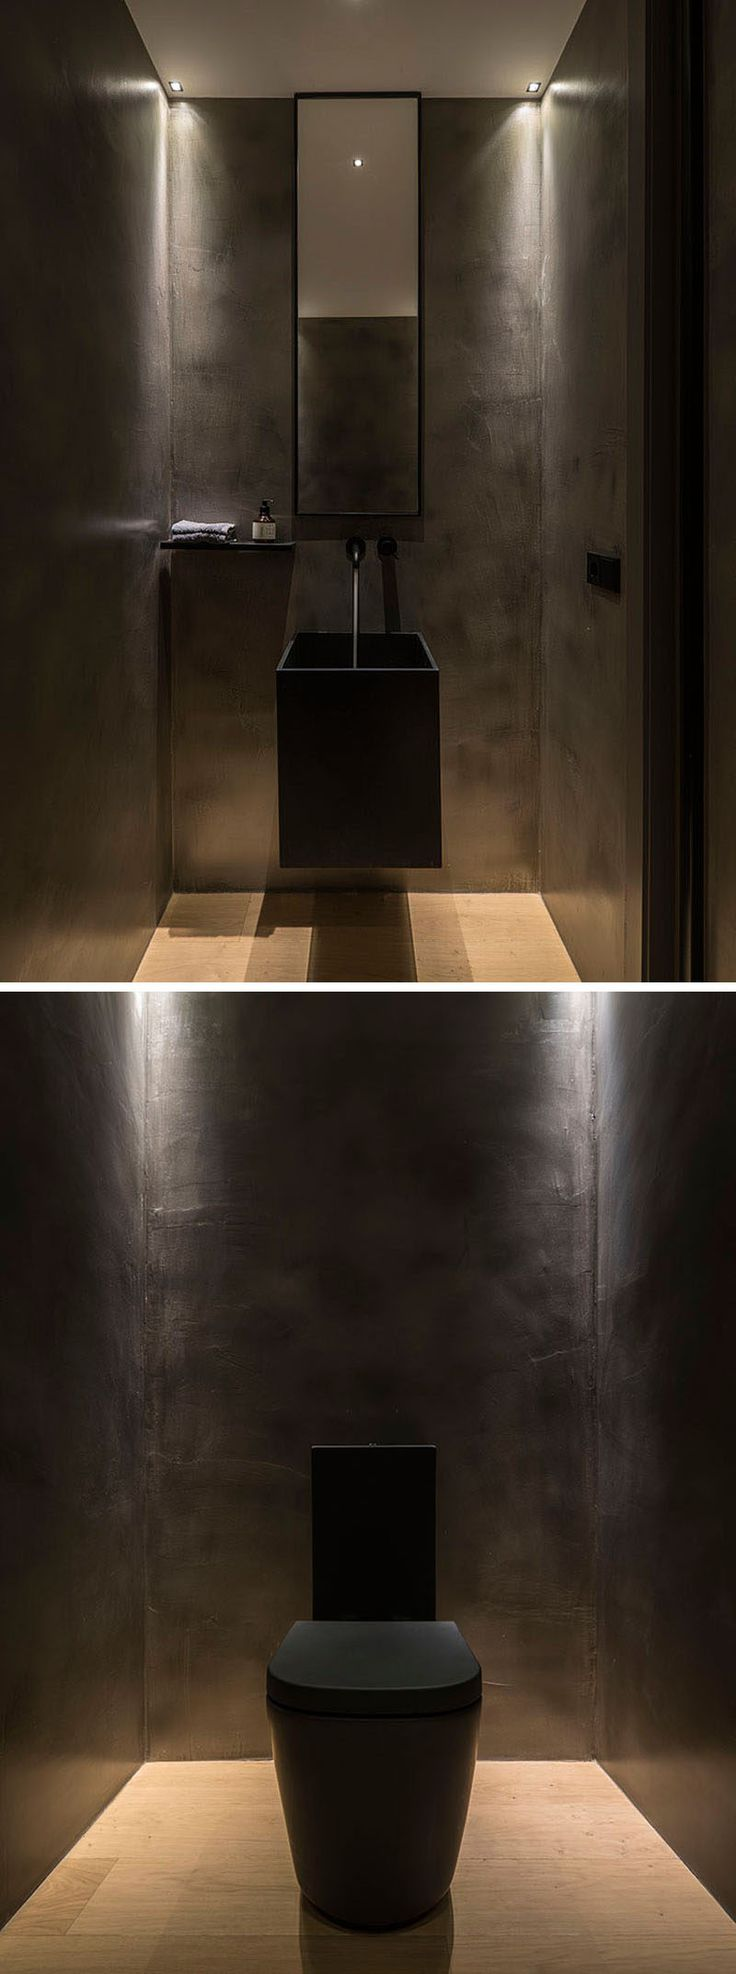 Inside this modern powder room, the walls, sink and toilet have been kept dark, creating a dramatic atmosphere,